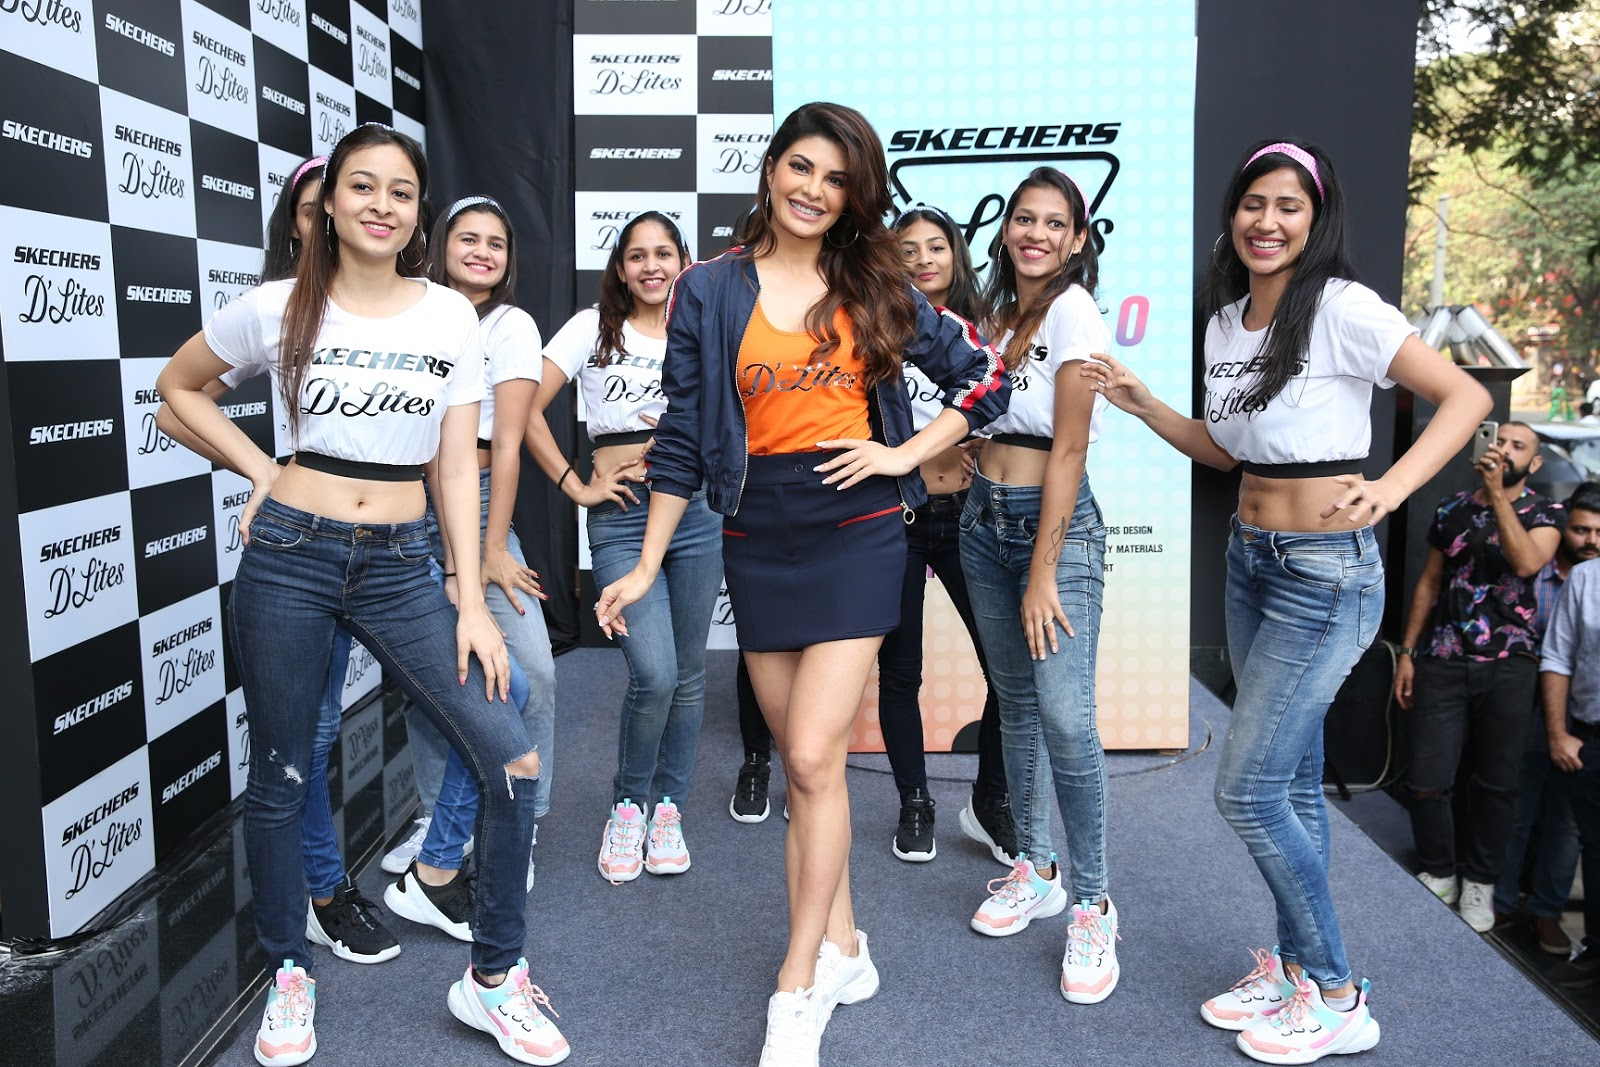 """ecef8bb9ee Skechers, An American performance and lifestyle footwear brand announces a new  range of sneakers """"Skechers D'Lites"""" in India. The announcement was made in  ..."""